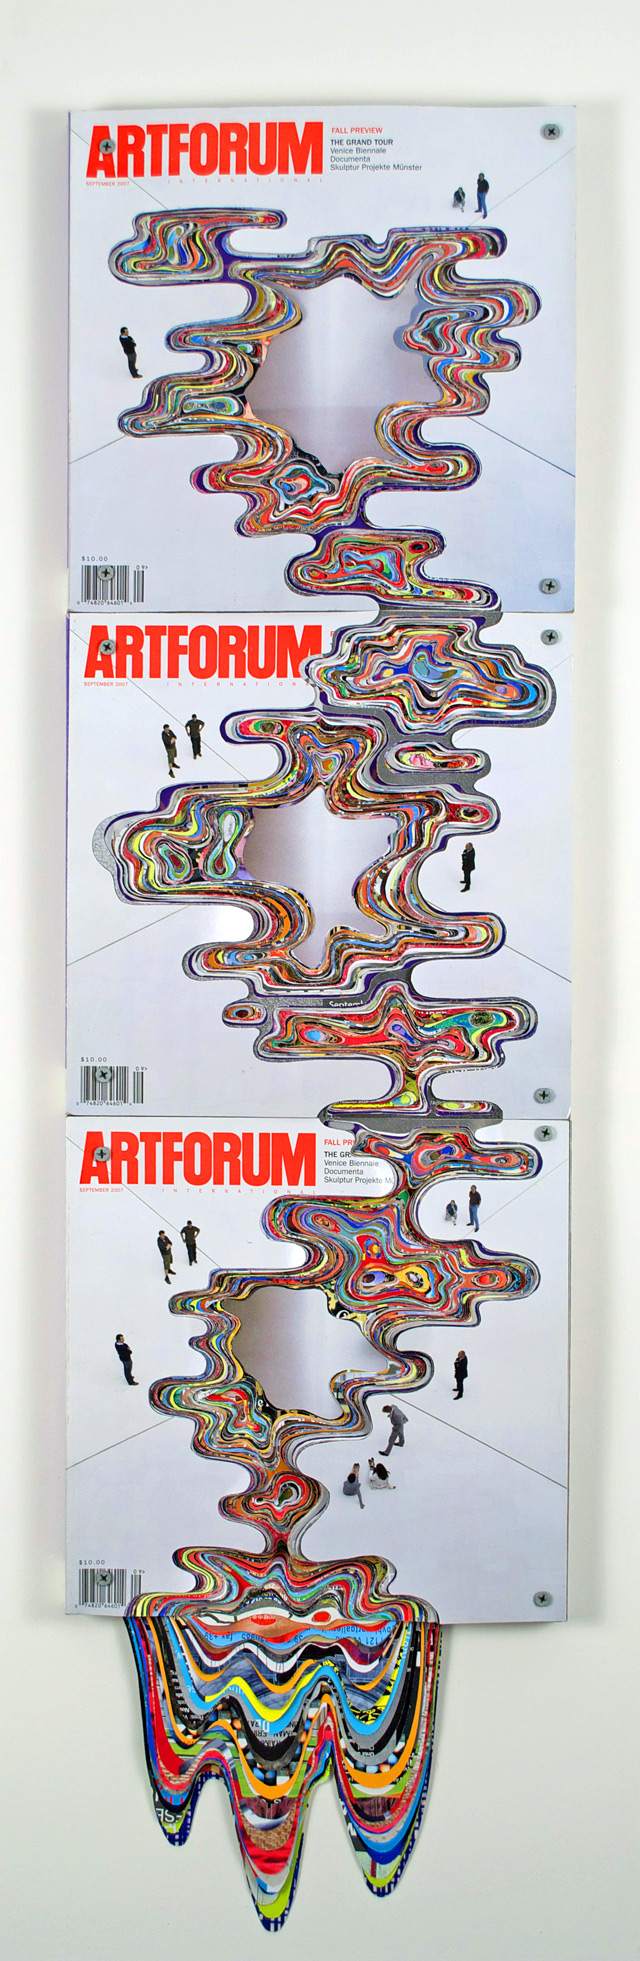 Artforum Magazines Carved into Dripping Waves of Color by Francesca Pastine sculpture paper